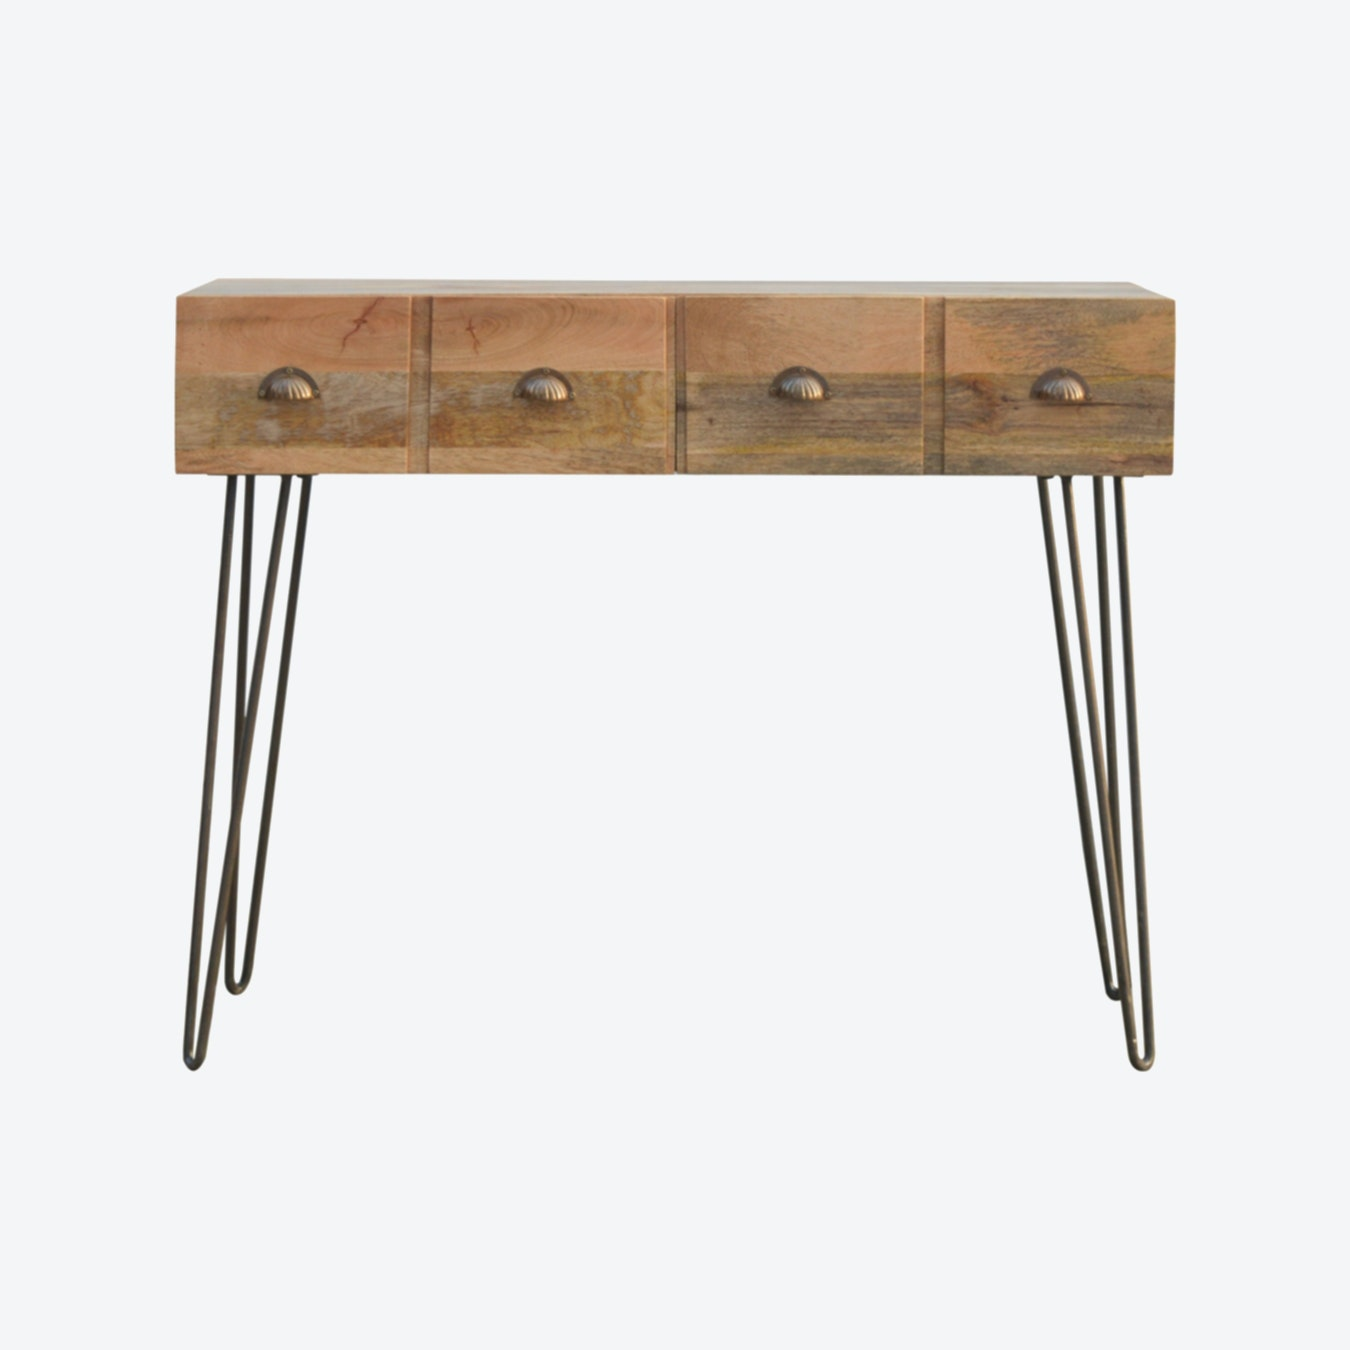 Solid Wood 4 Drawers Console Table With Iron Base By Artisan Furniture Fy